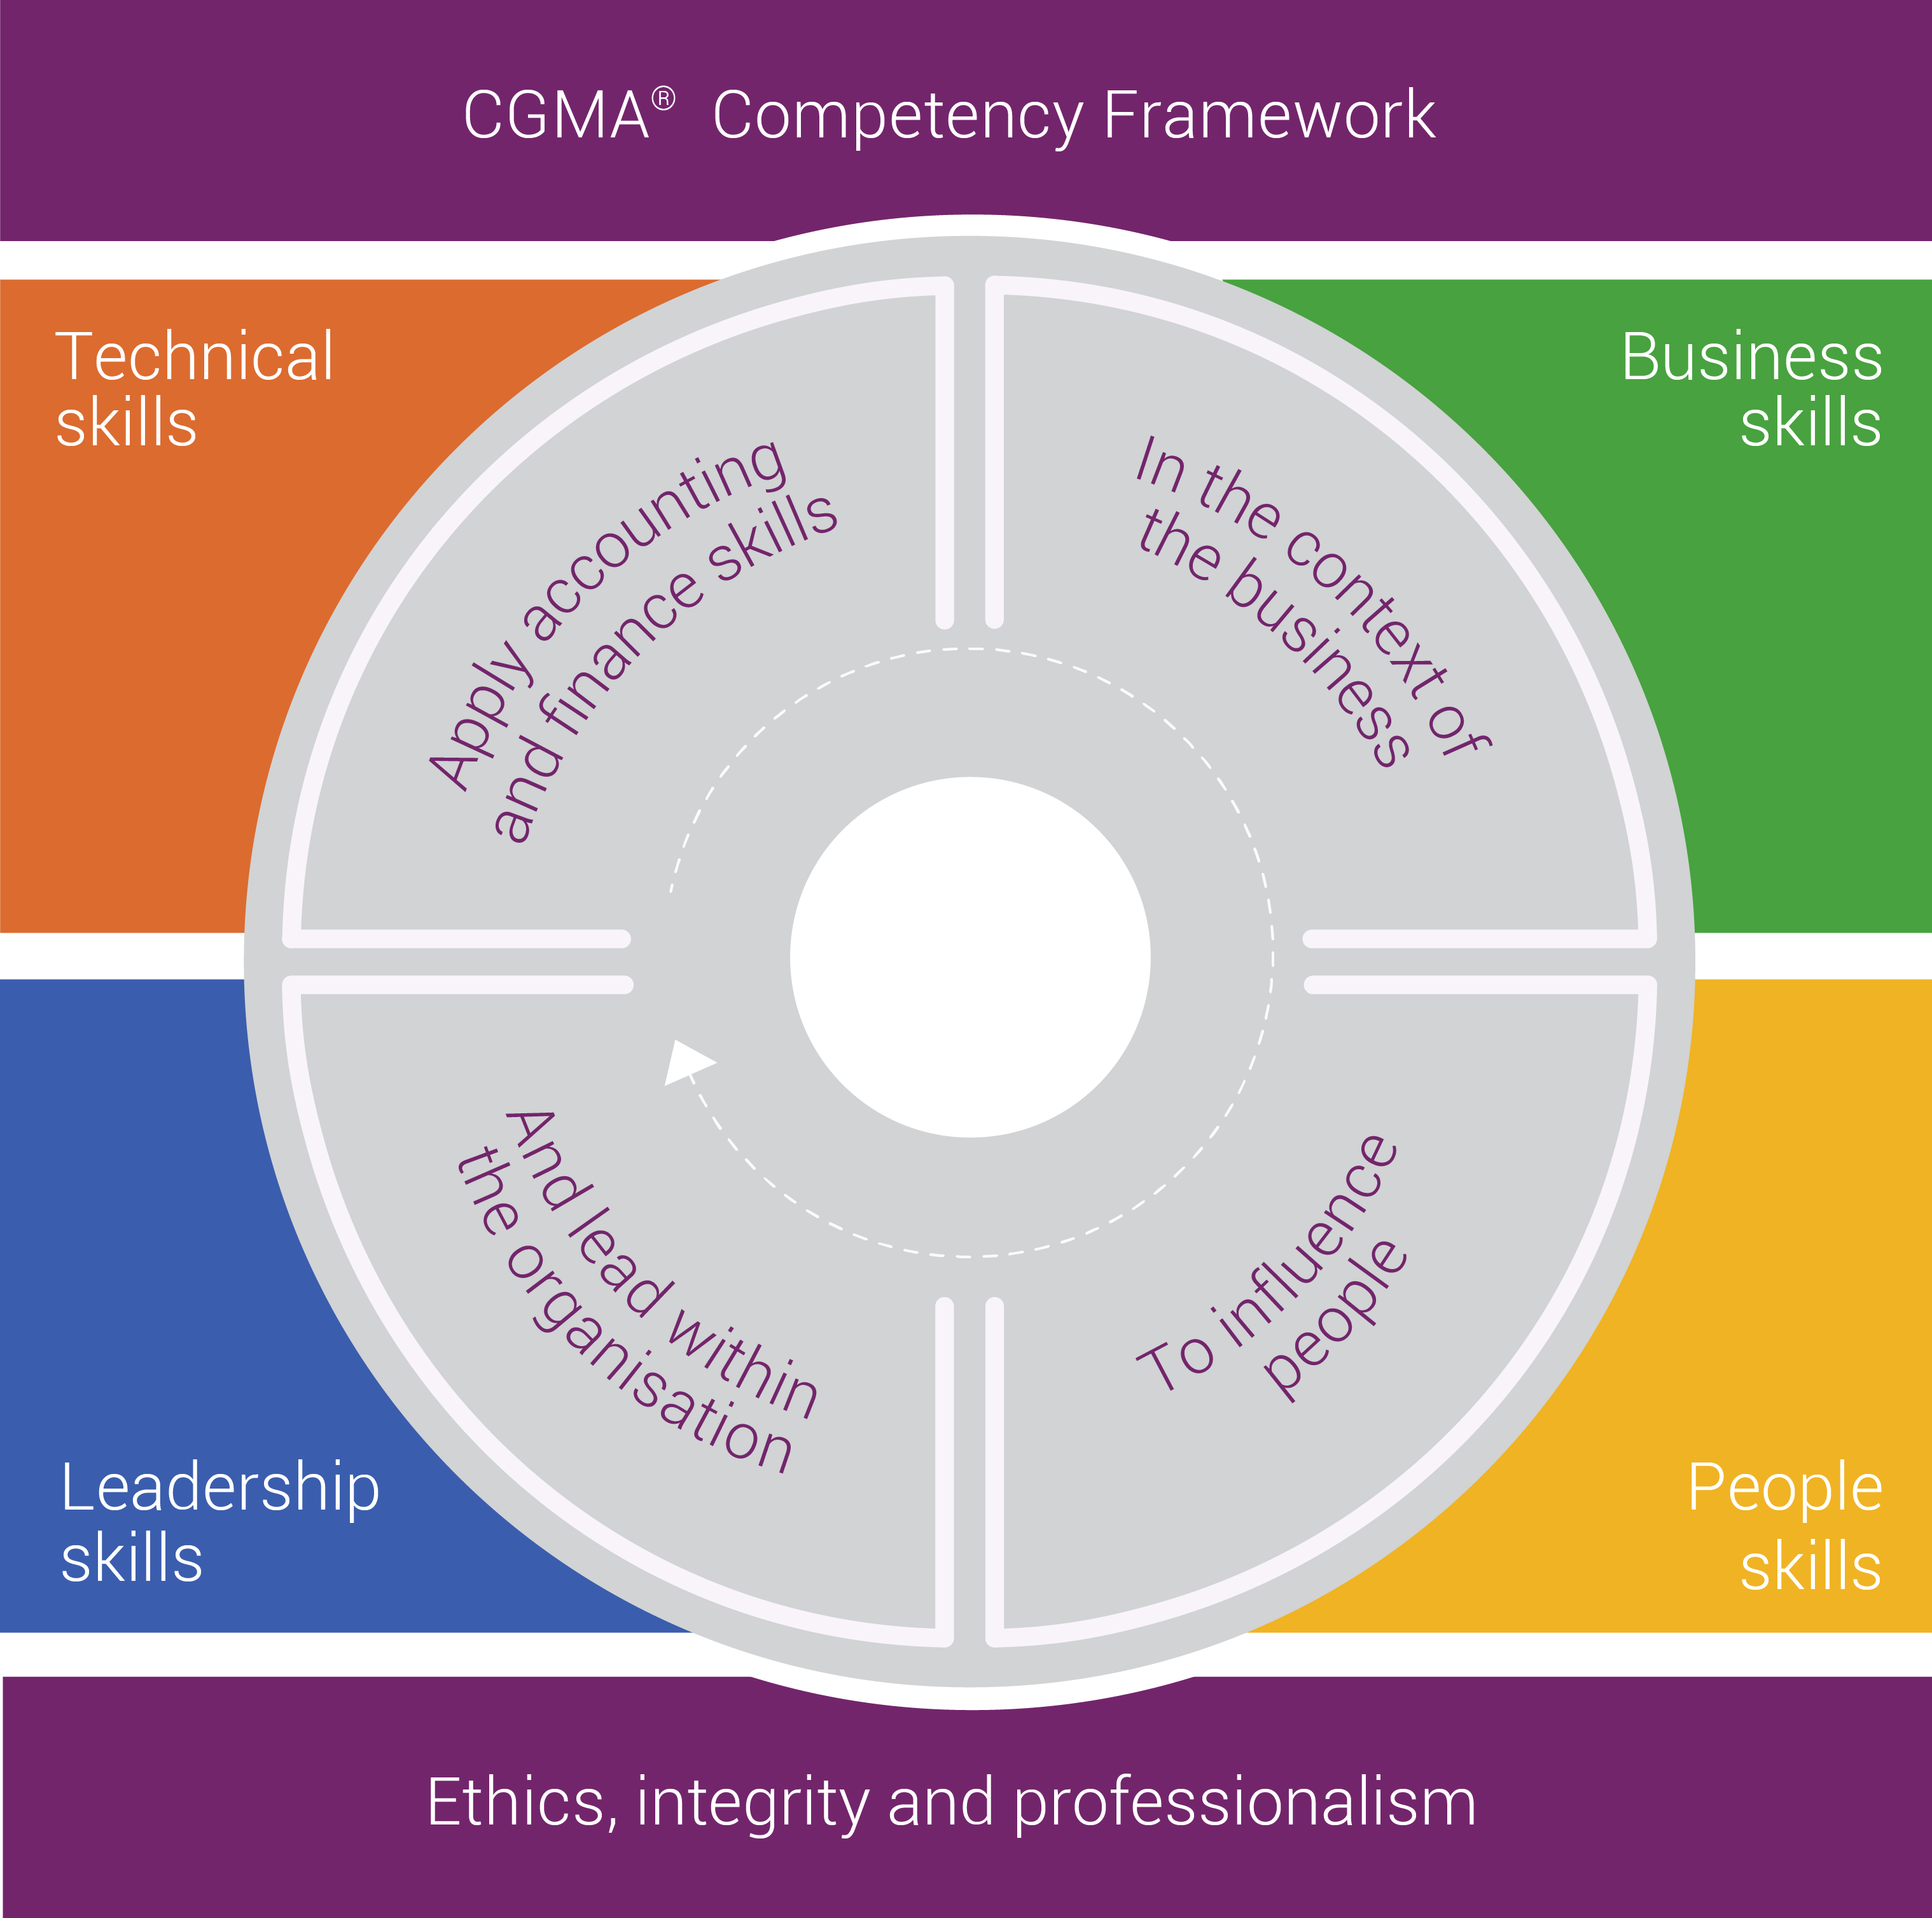 management and competencies Leadership core competencies   human capital management: builds and manages workforce based on organizational goals, budget considerations, and staffing needs .